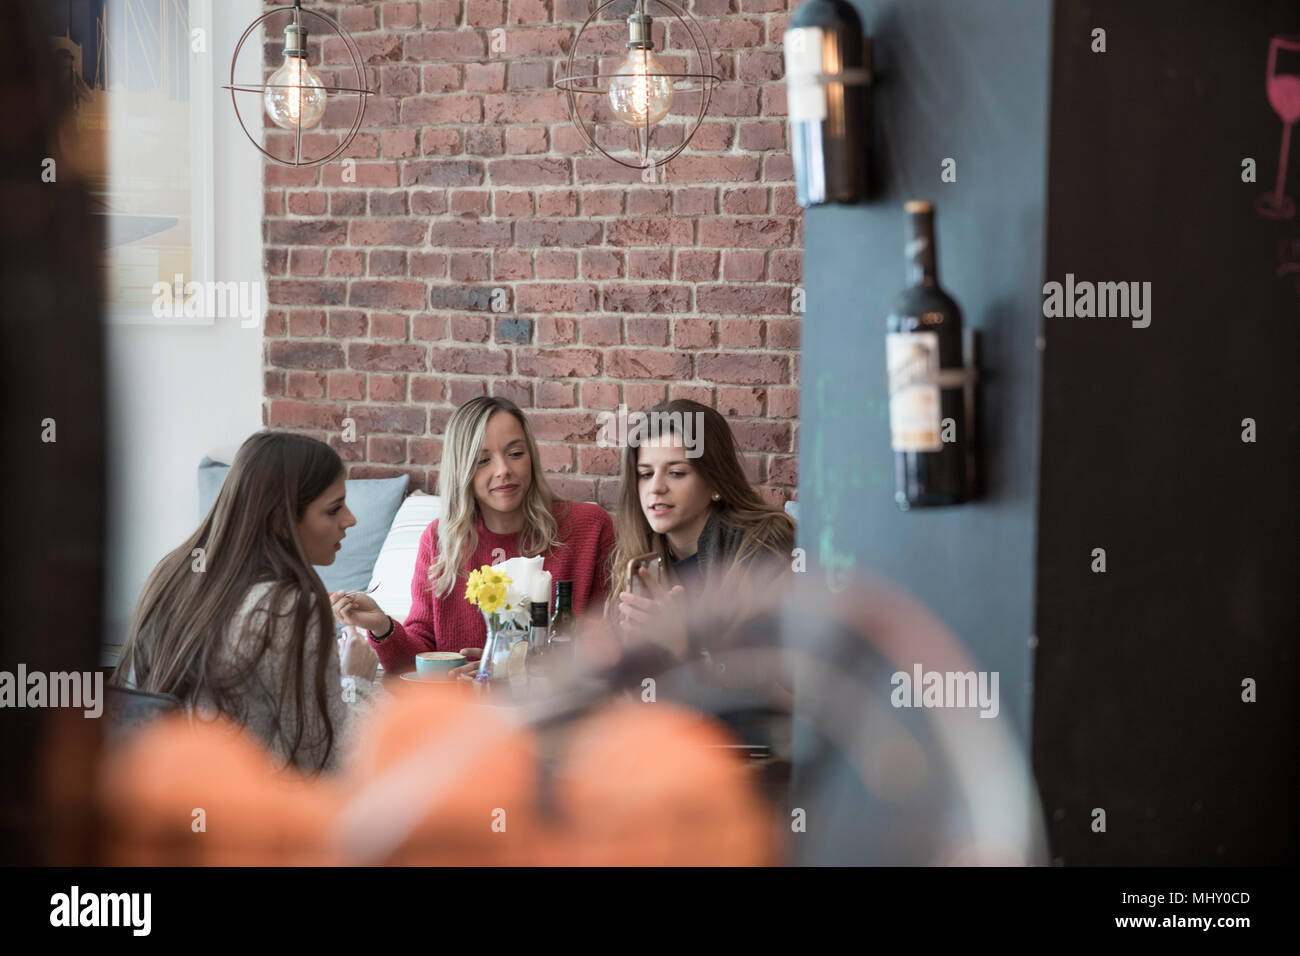 Female friends sitting in cafe, looking at smartphone Photo Stock